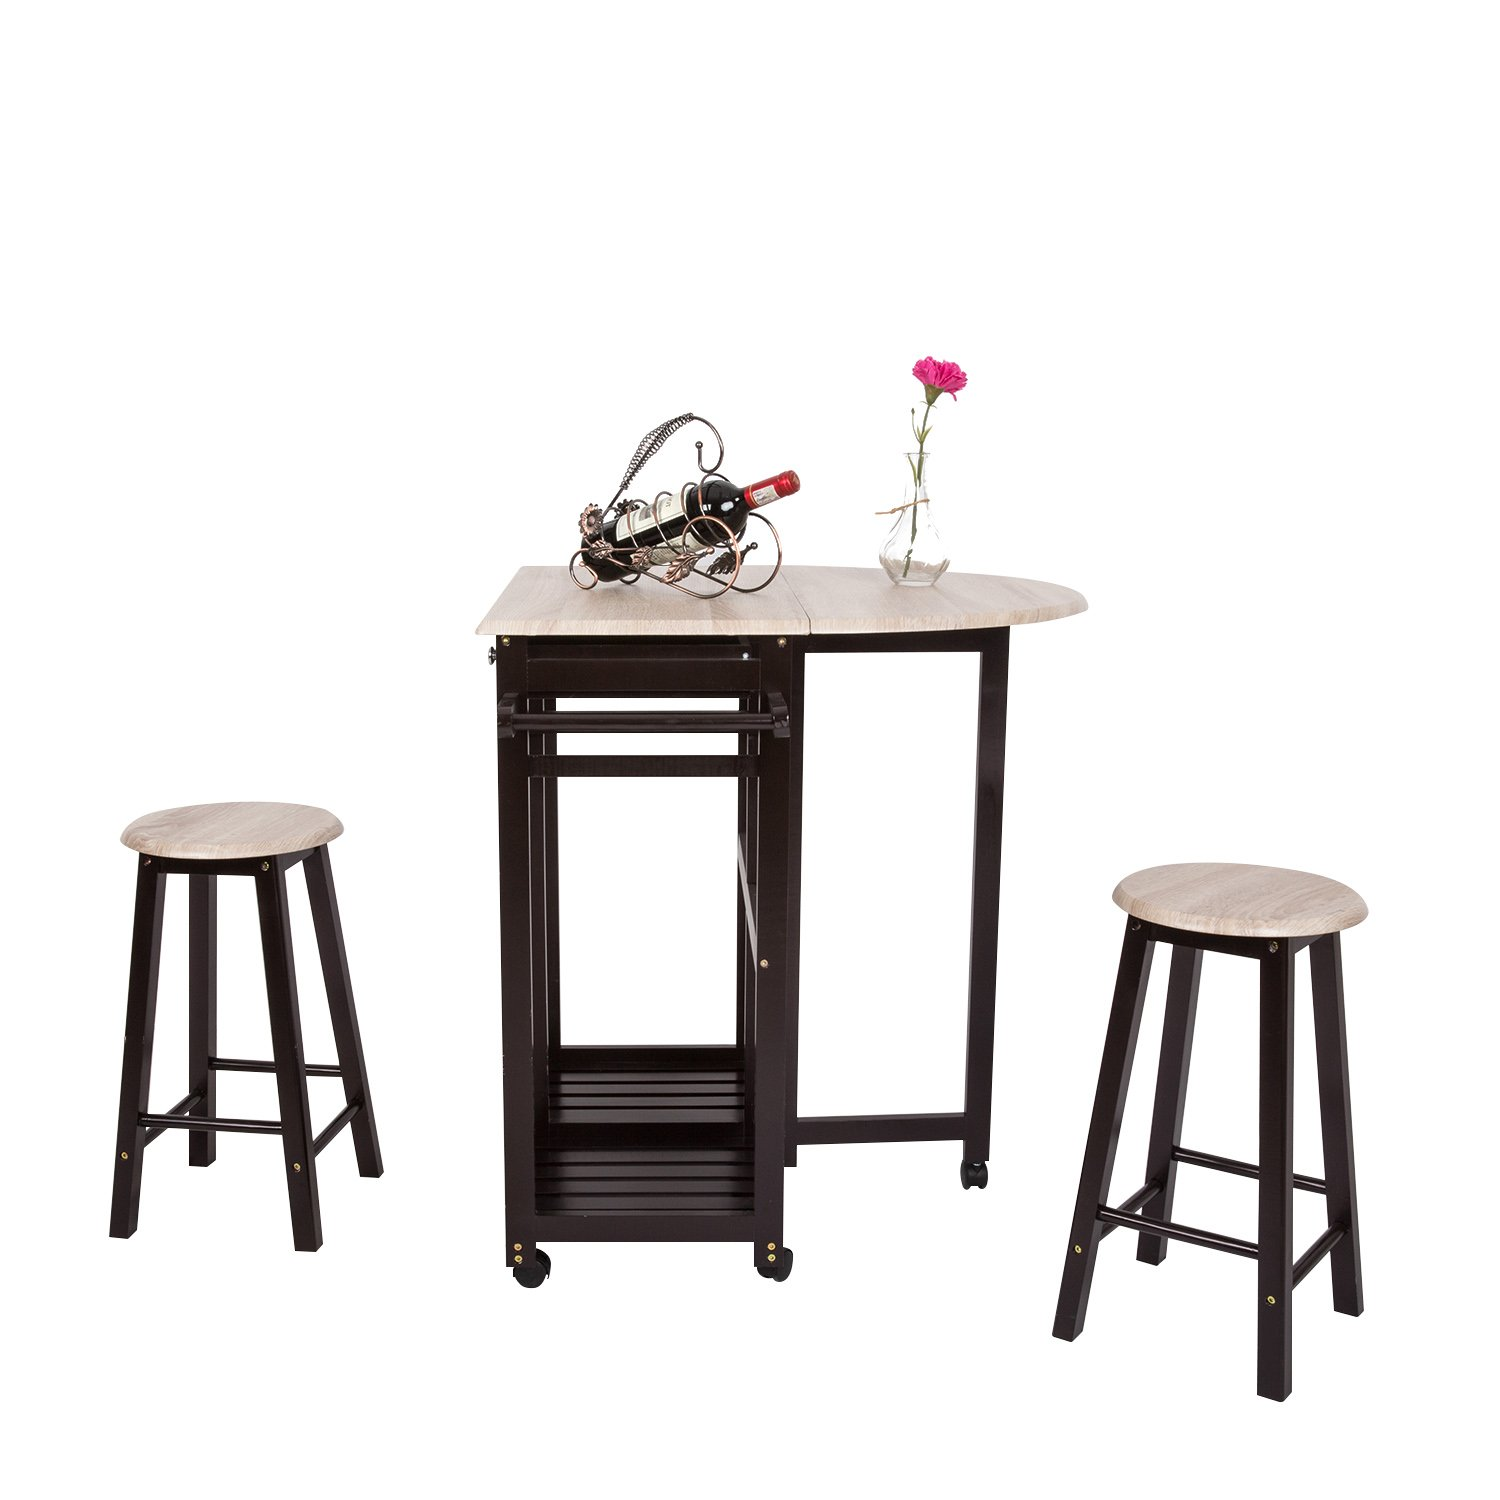 3PCS Dinning Set Table Rolling Kitchen Island Trolley Cart Set Breakfast Bar Cart Drop-Leaf Folding Table w/2 Stools and 2 Drawers by Kinbor